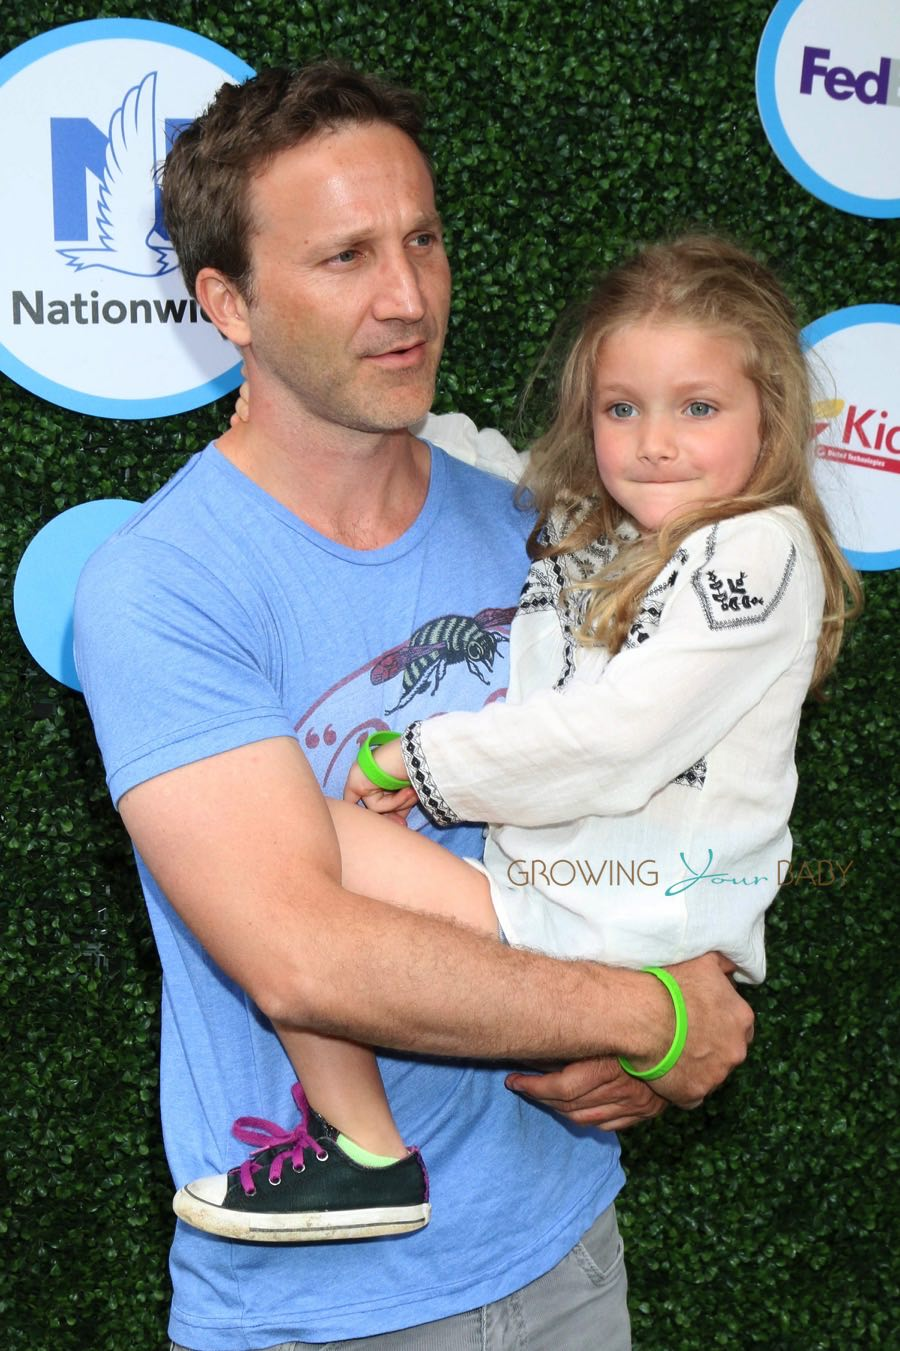 Breckin Meyer, Clover Meyer at Safe Kids Day - Growing Your Baby